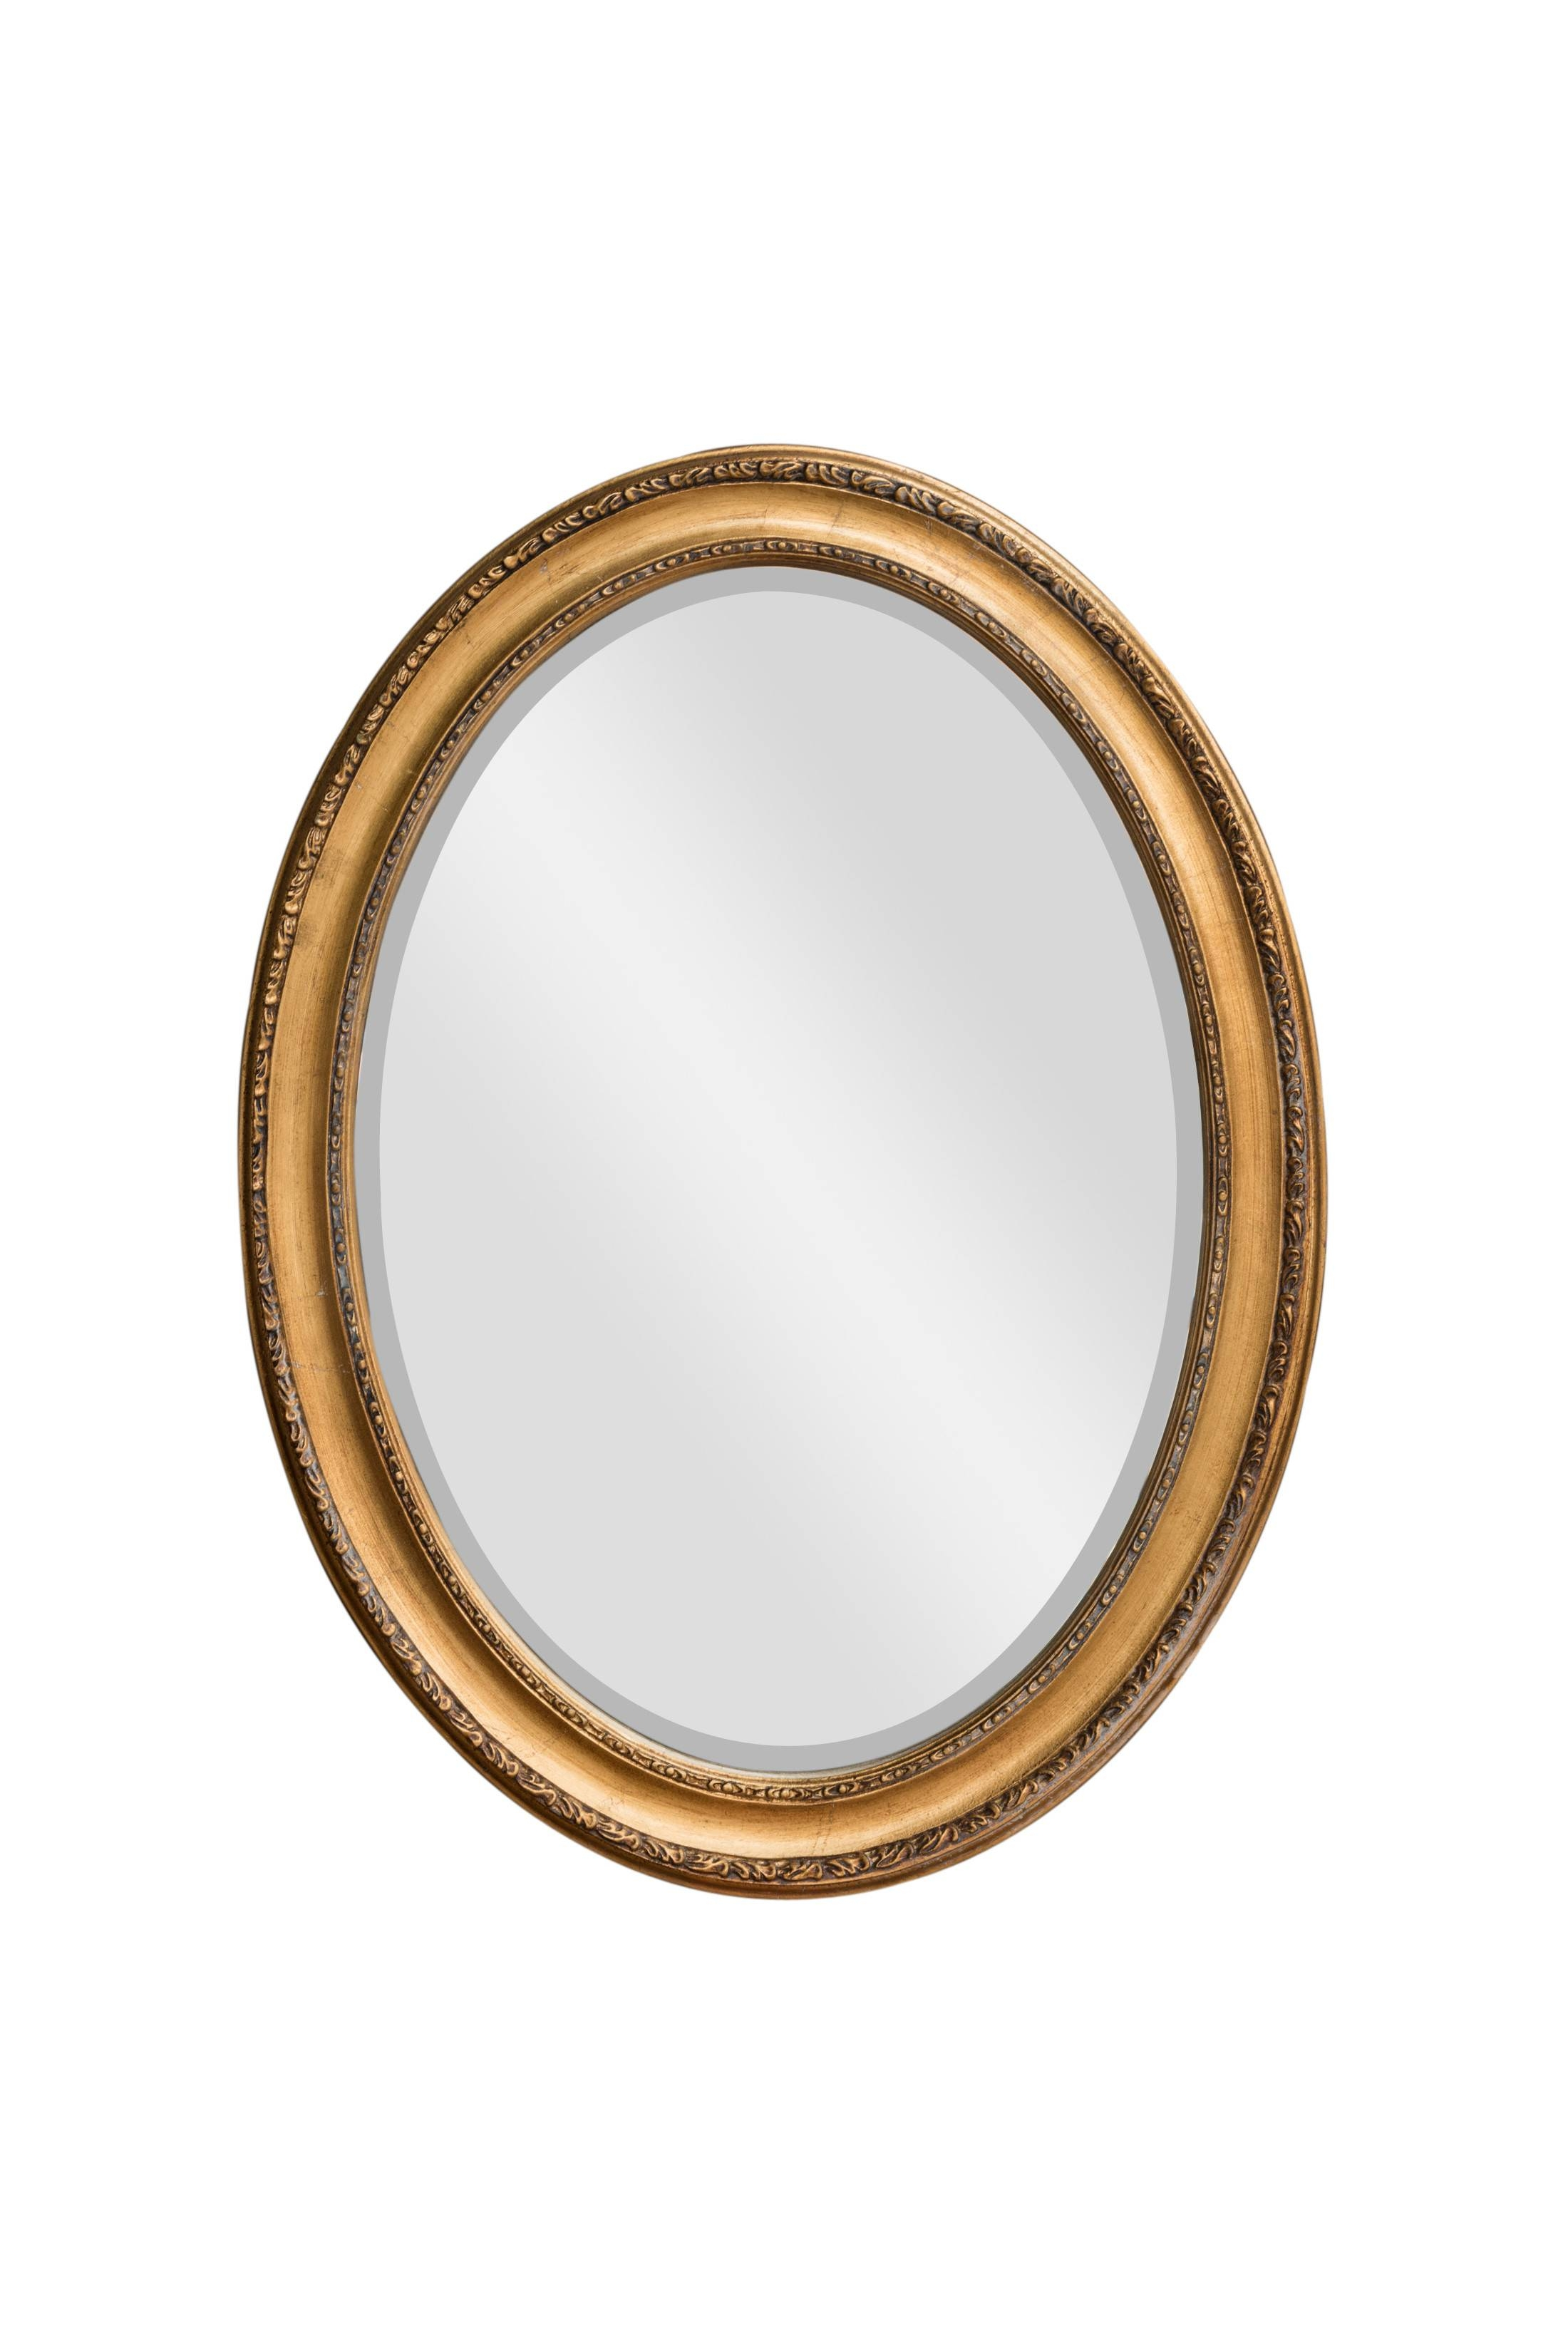 Oval Mirrors | Mirrors For Sale - Panfili Mirrors & Interiors in Gold Round Mirrors (Image 18 of 25)